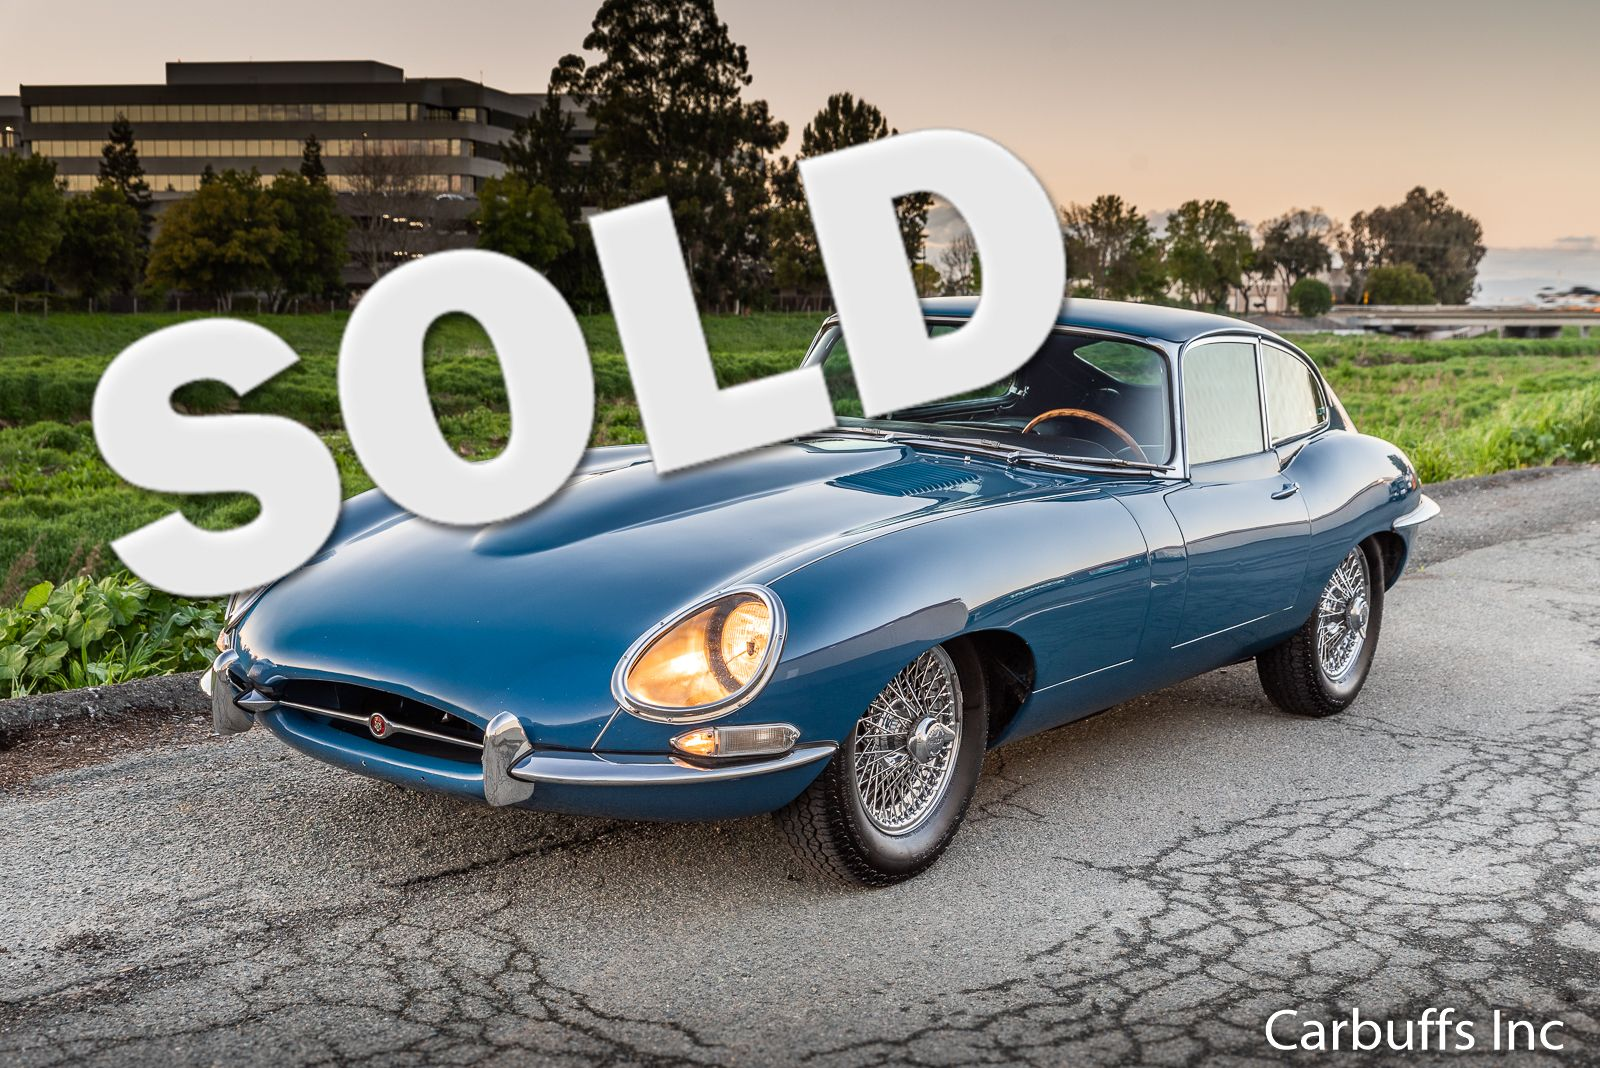 hight resolution of 1966 jaguar xke series 1 concord ca carbuffs in concord ca